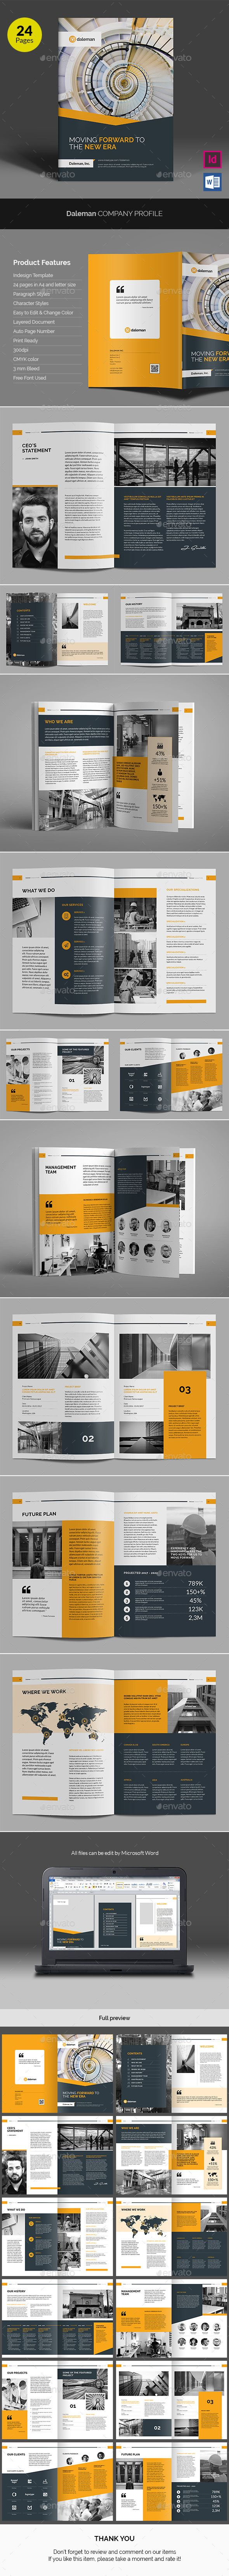 Pin By Heri Wibowo On My Brochure Templates Pinterest Company